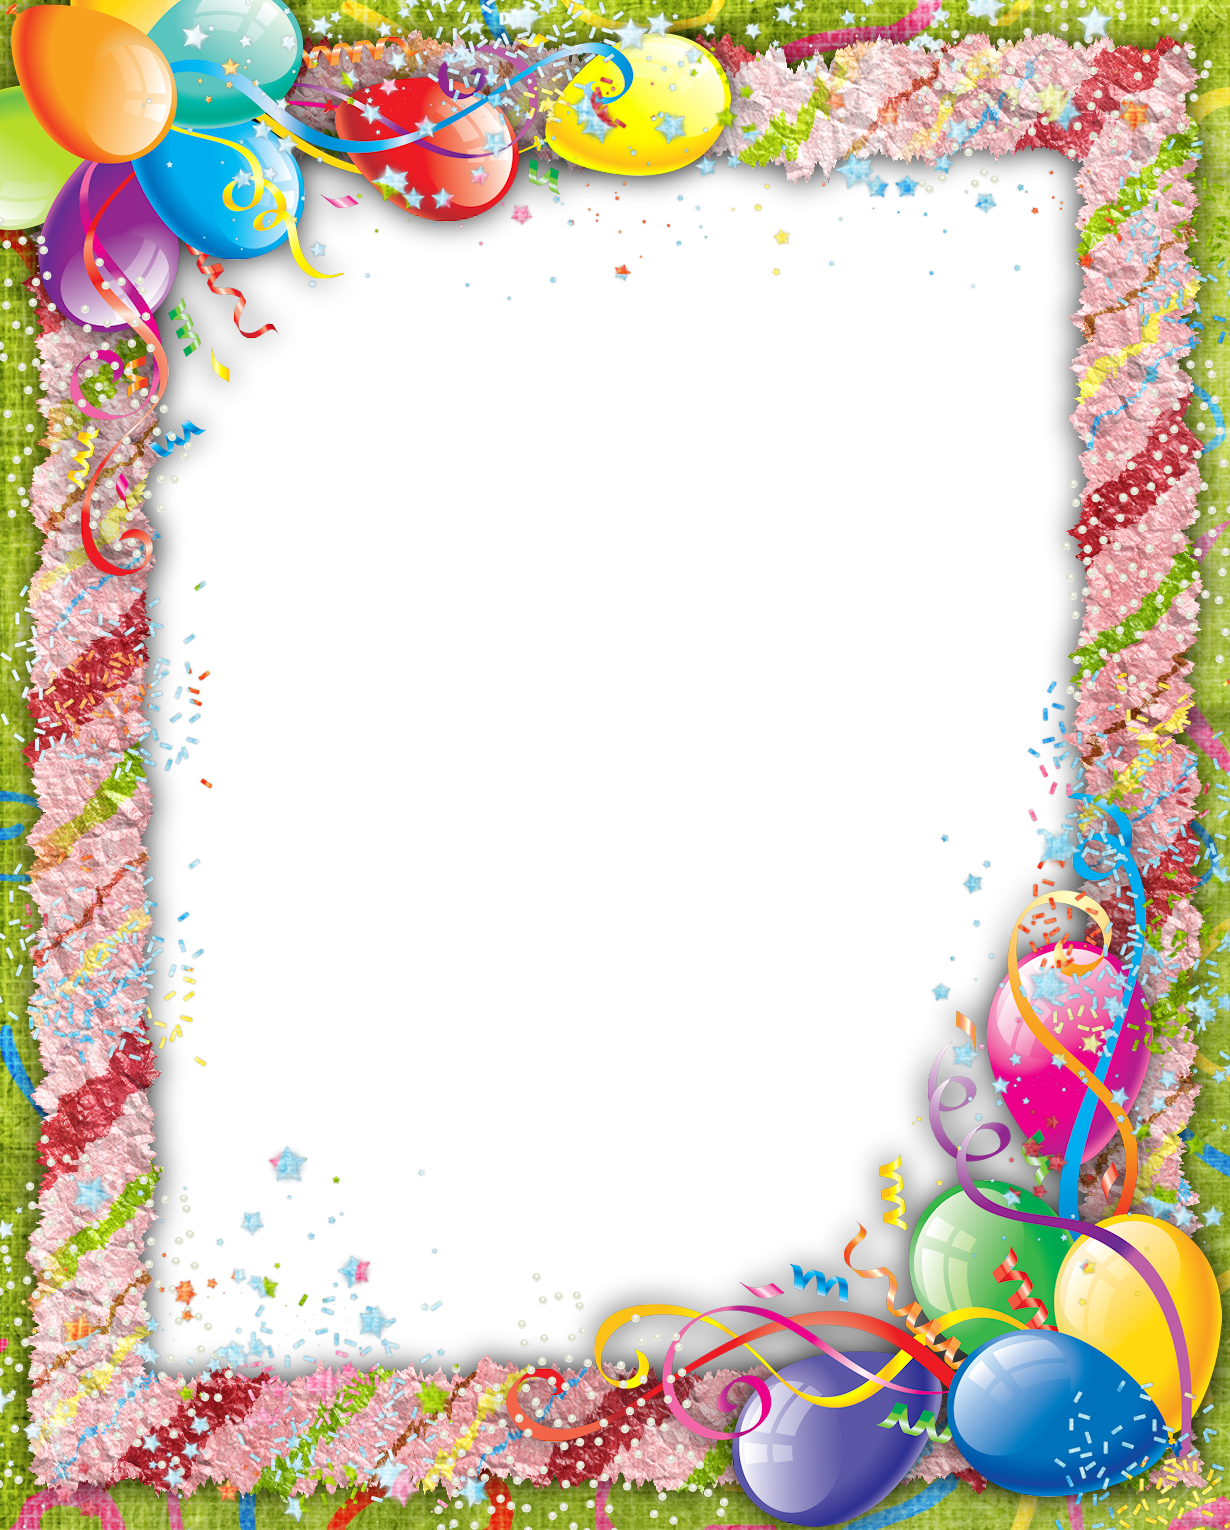 Birthday frames and borders png. Transparent frame gallery yopriceville